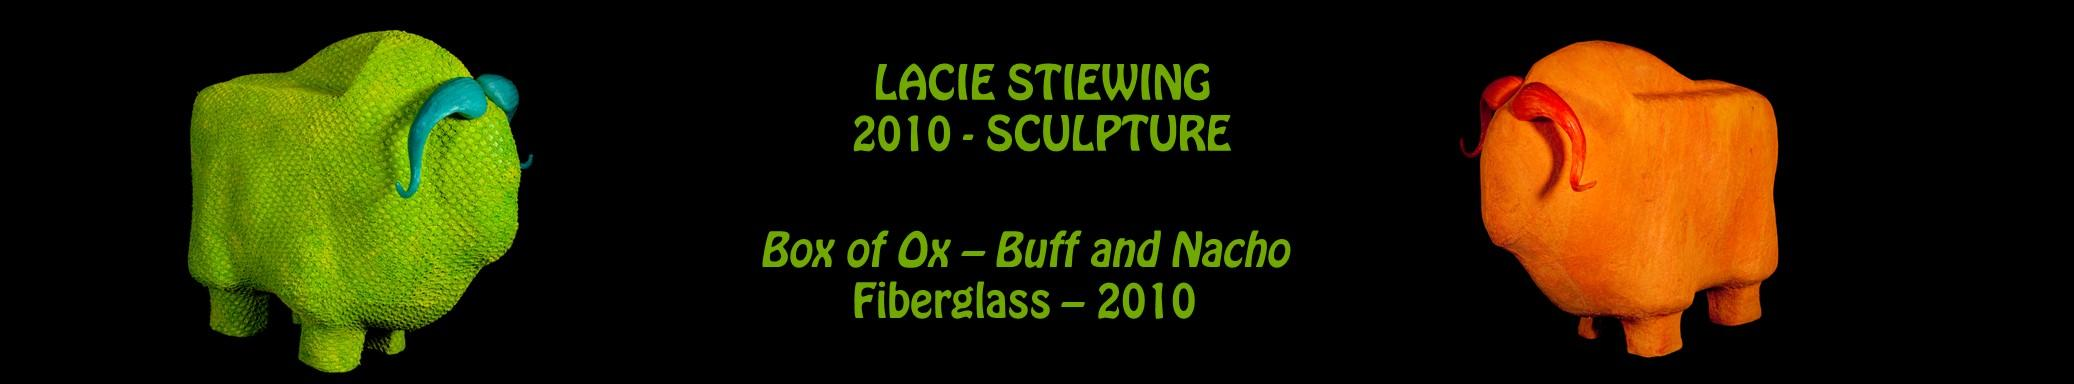 Lacie Stiewing - sculpture - Vox of Ox - Buff and Nacho - fiberglass - 2010